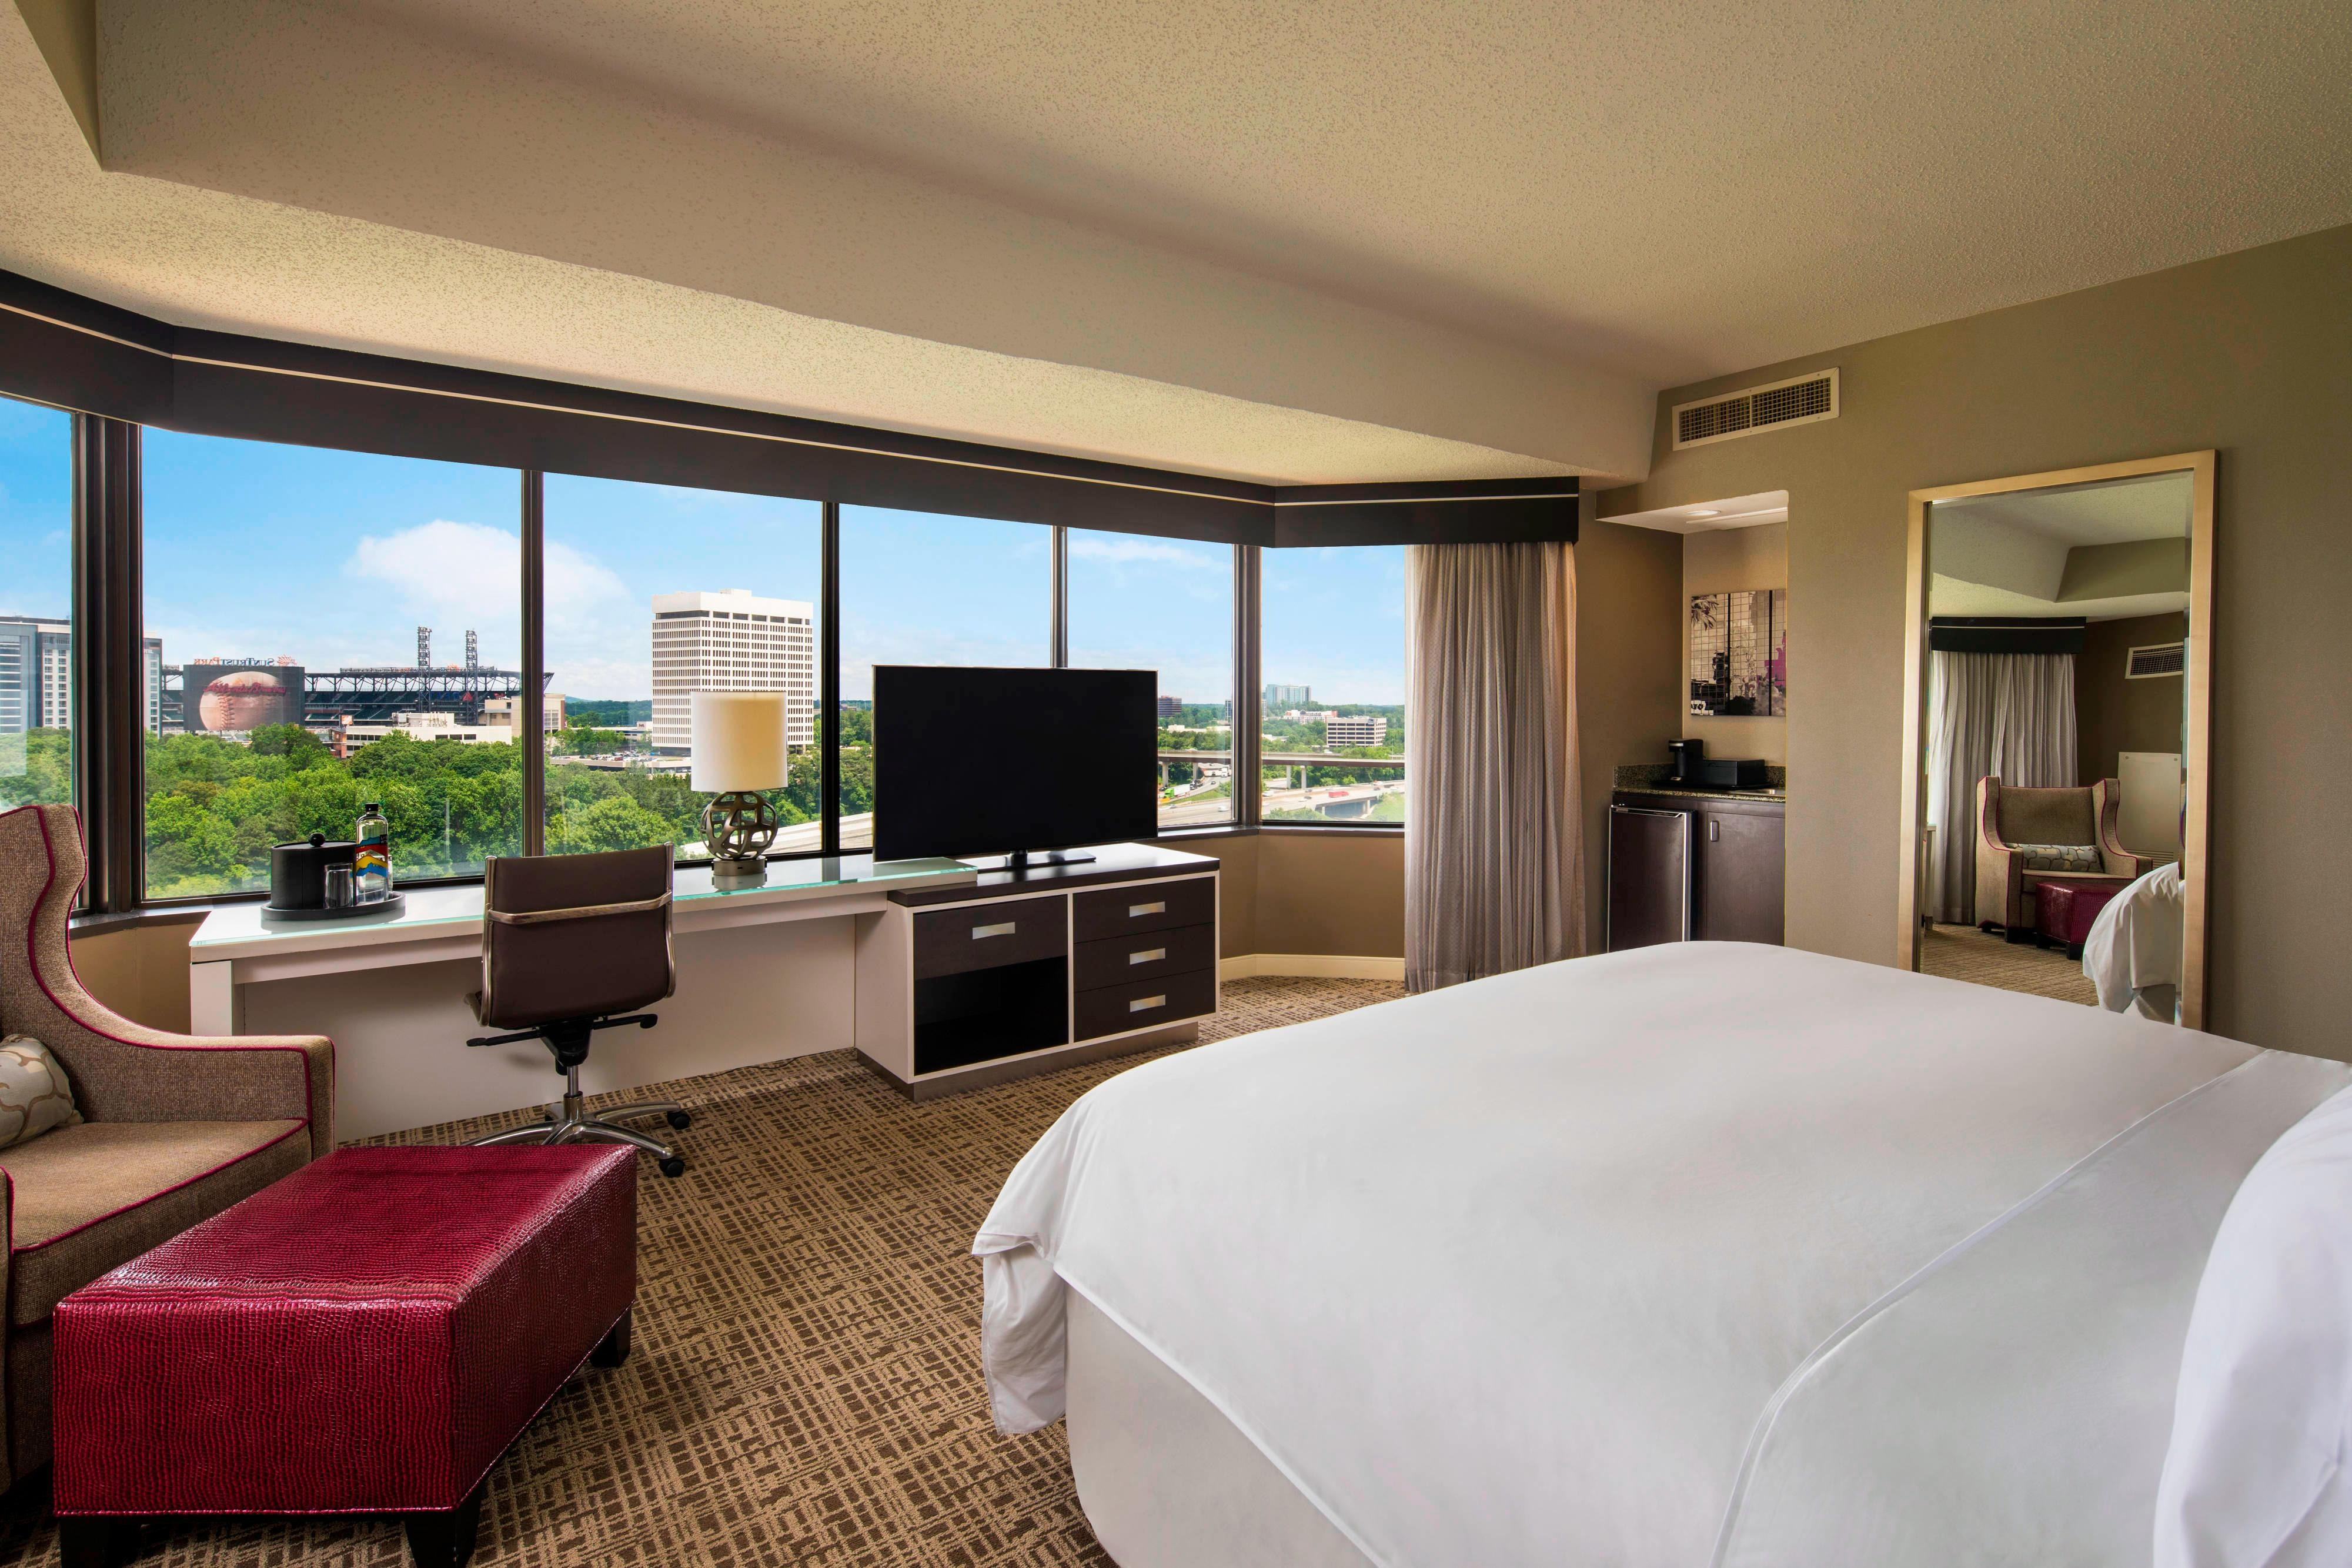 King Executive Guest Room with a View